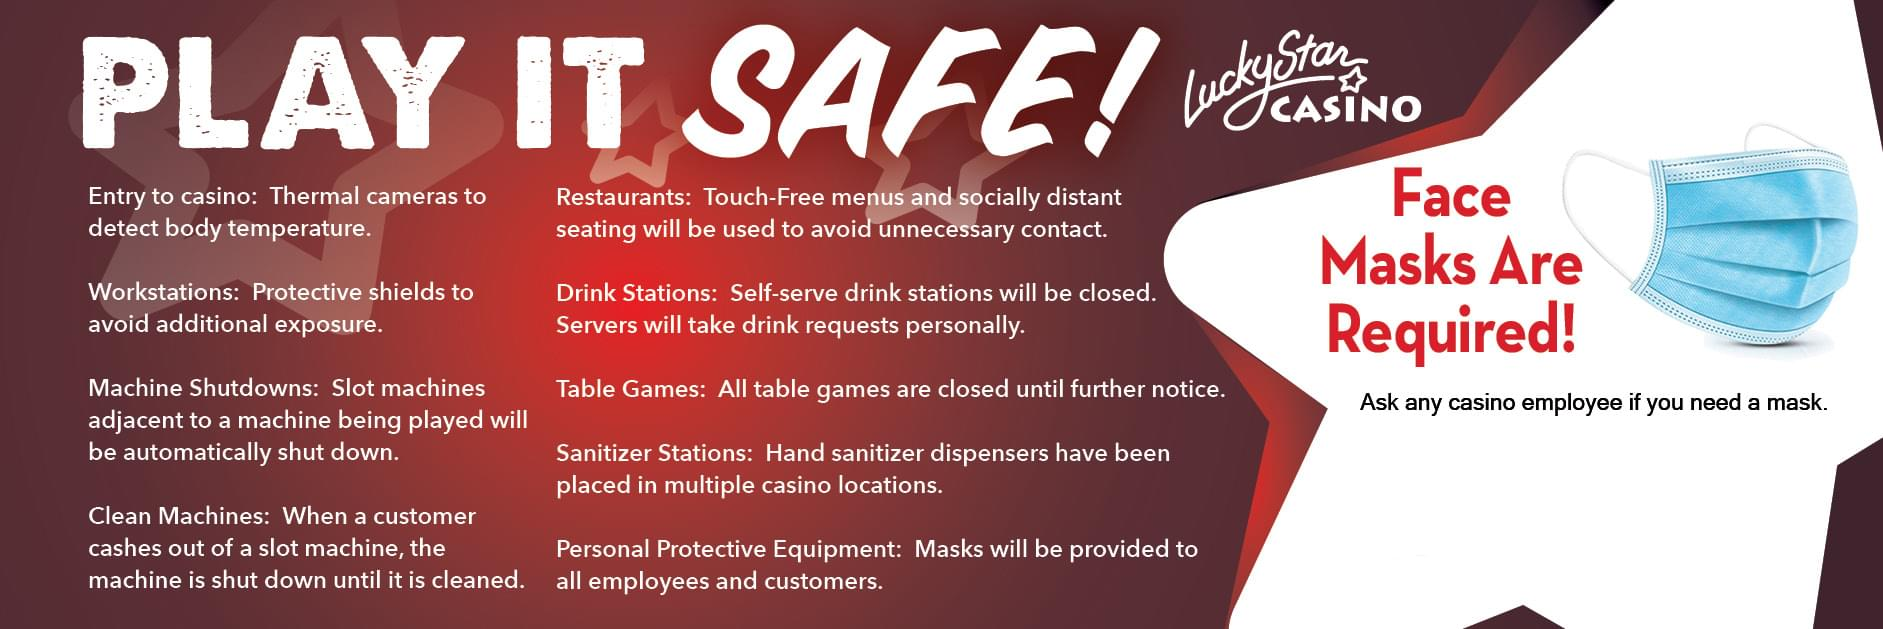 Play it Safe at Lucky Star Casino